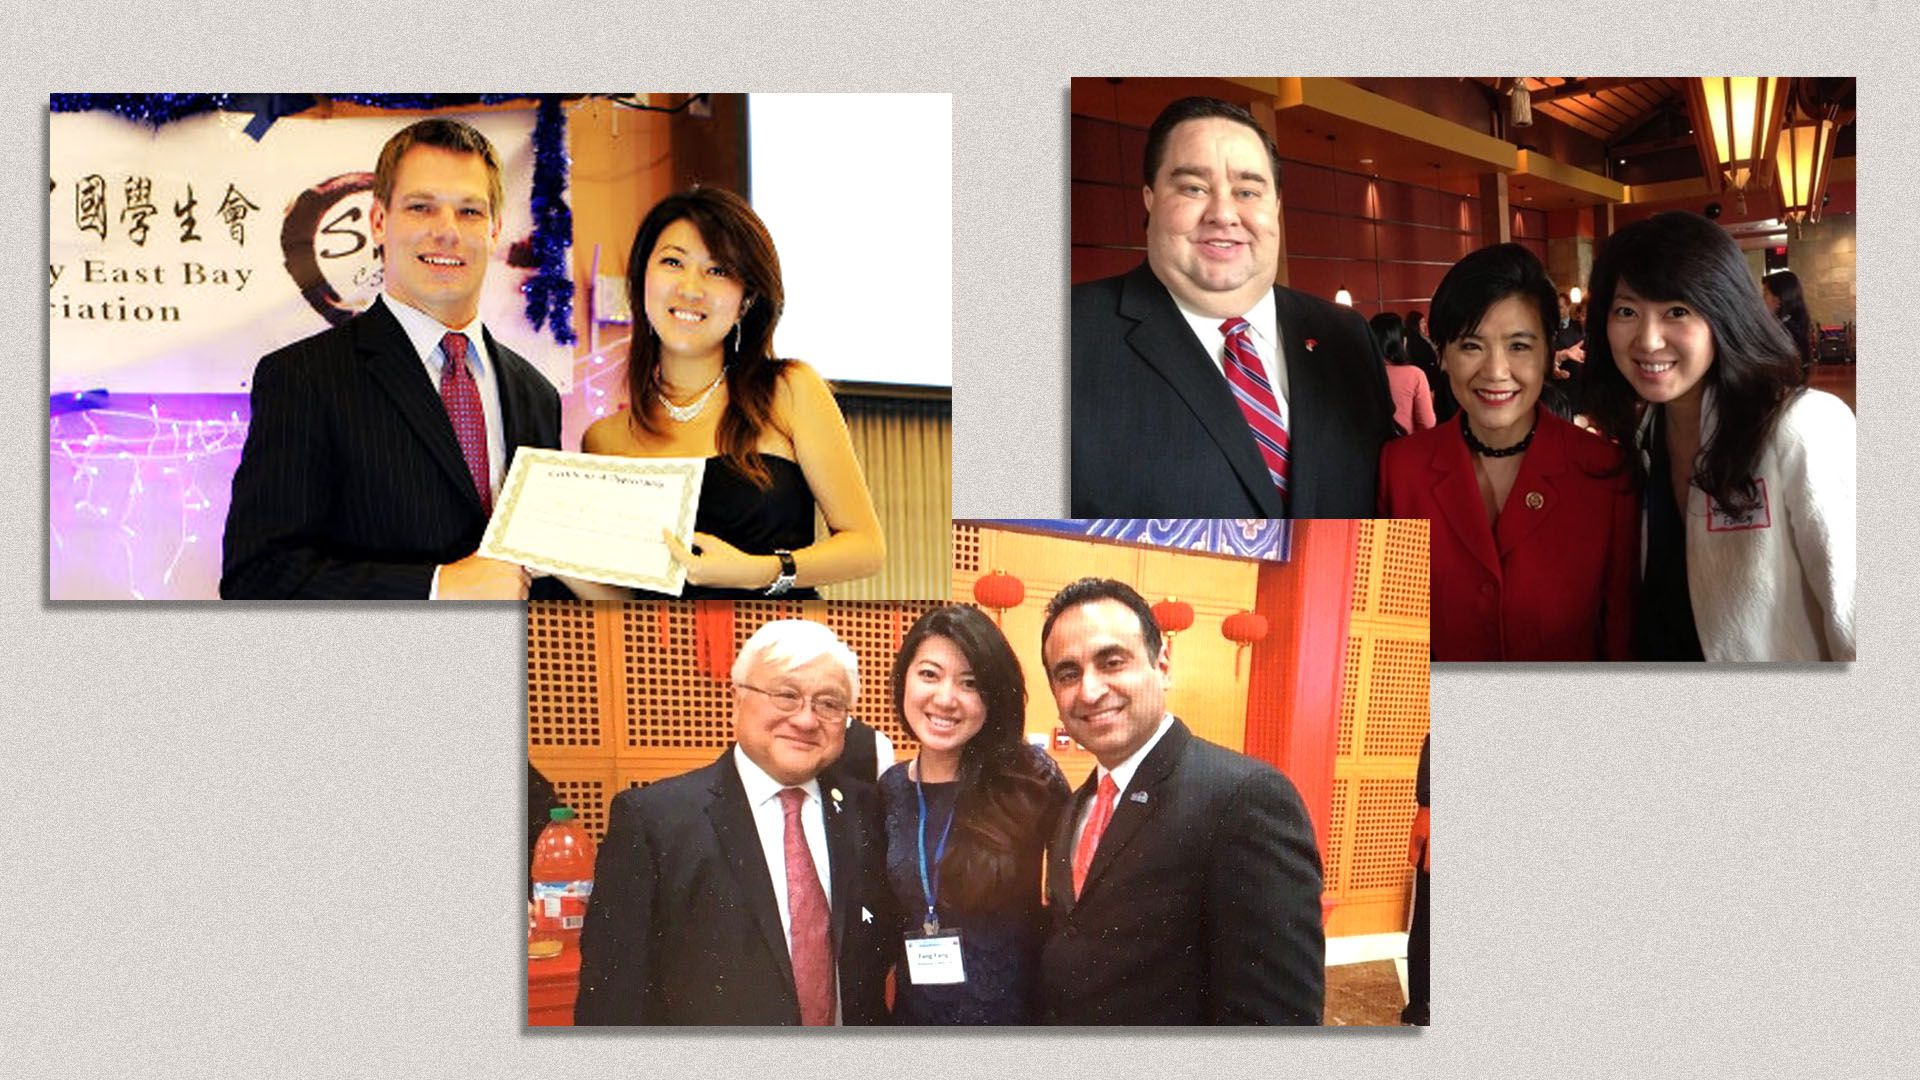 Montage of three images of Fang with Bay Area politicians